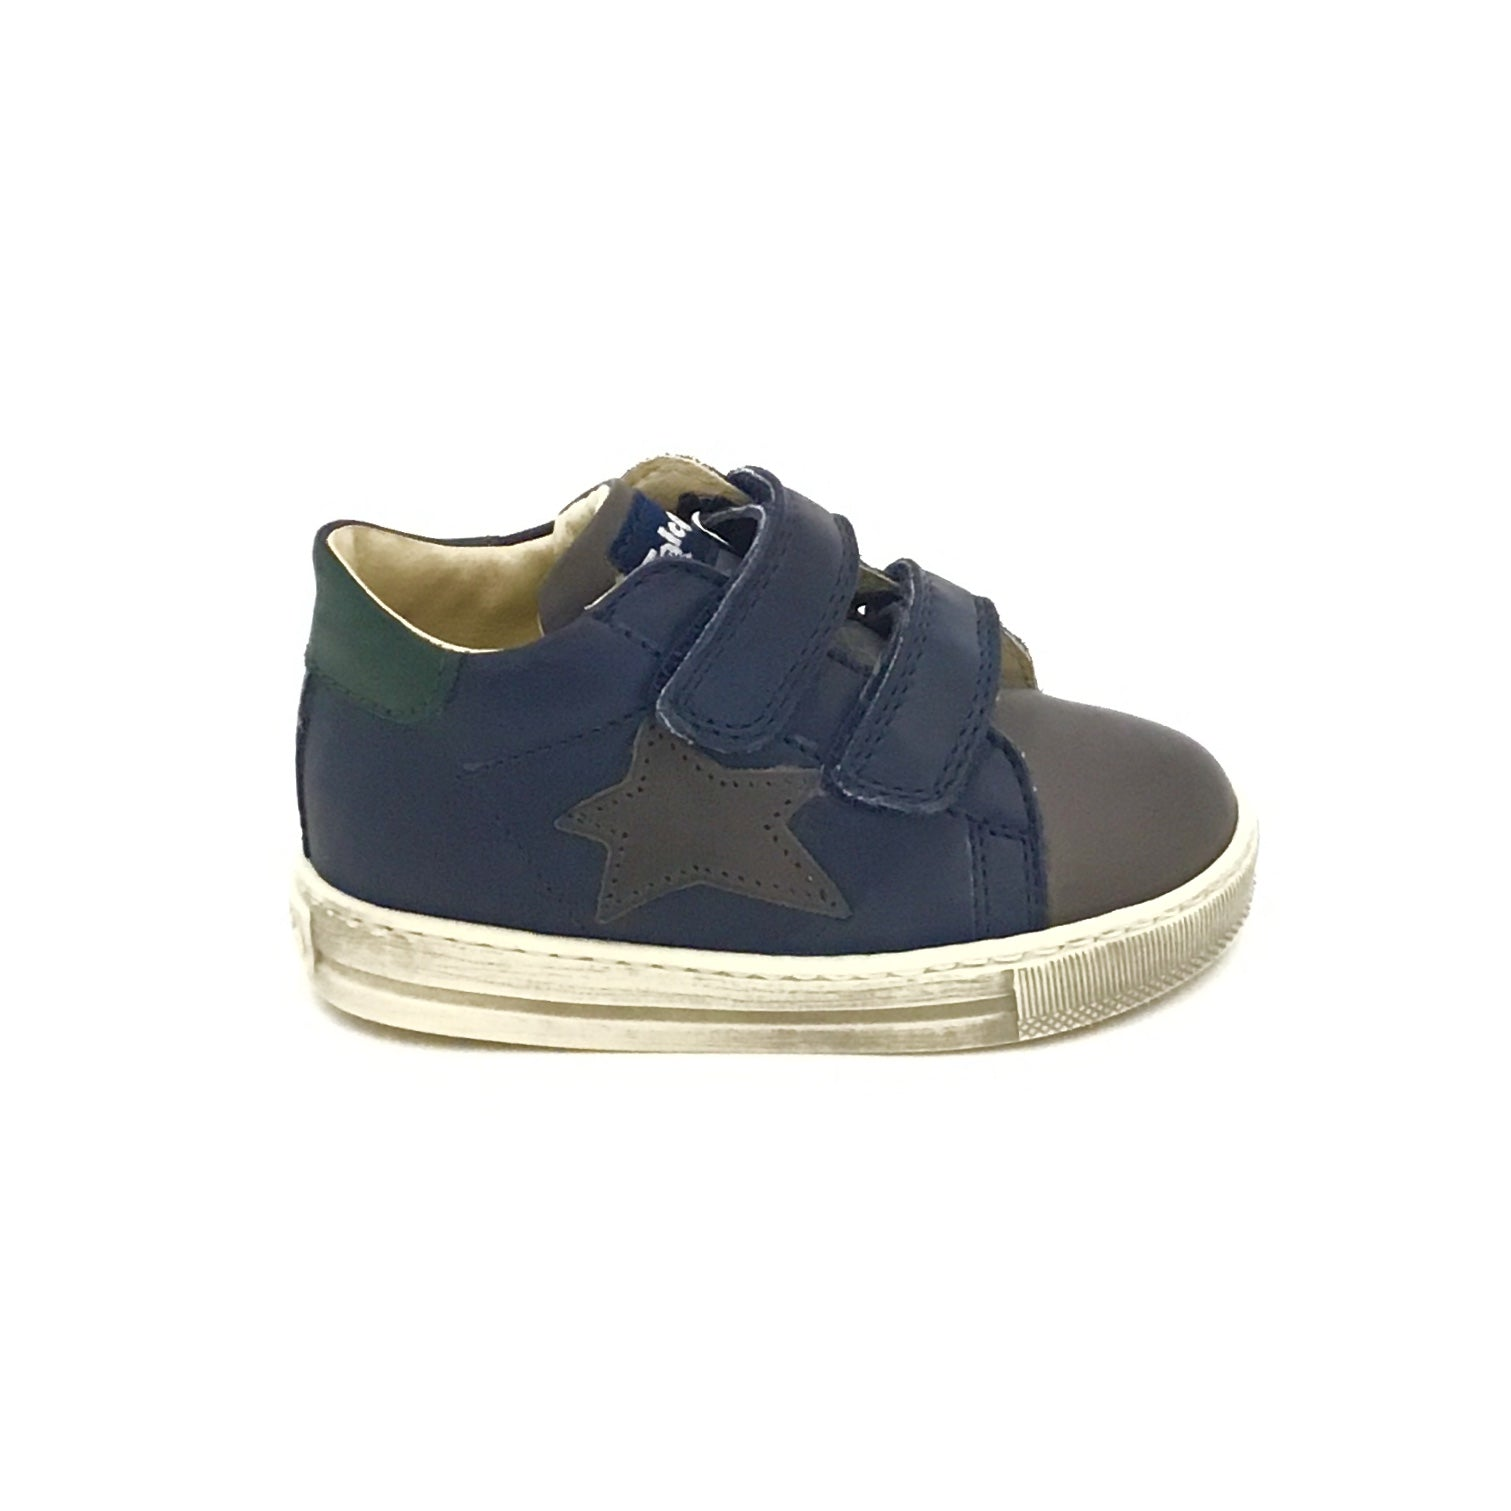 Falcotto Navy and Charcoal Sneaker with Star and Double Velcro